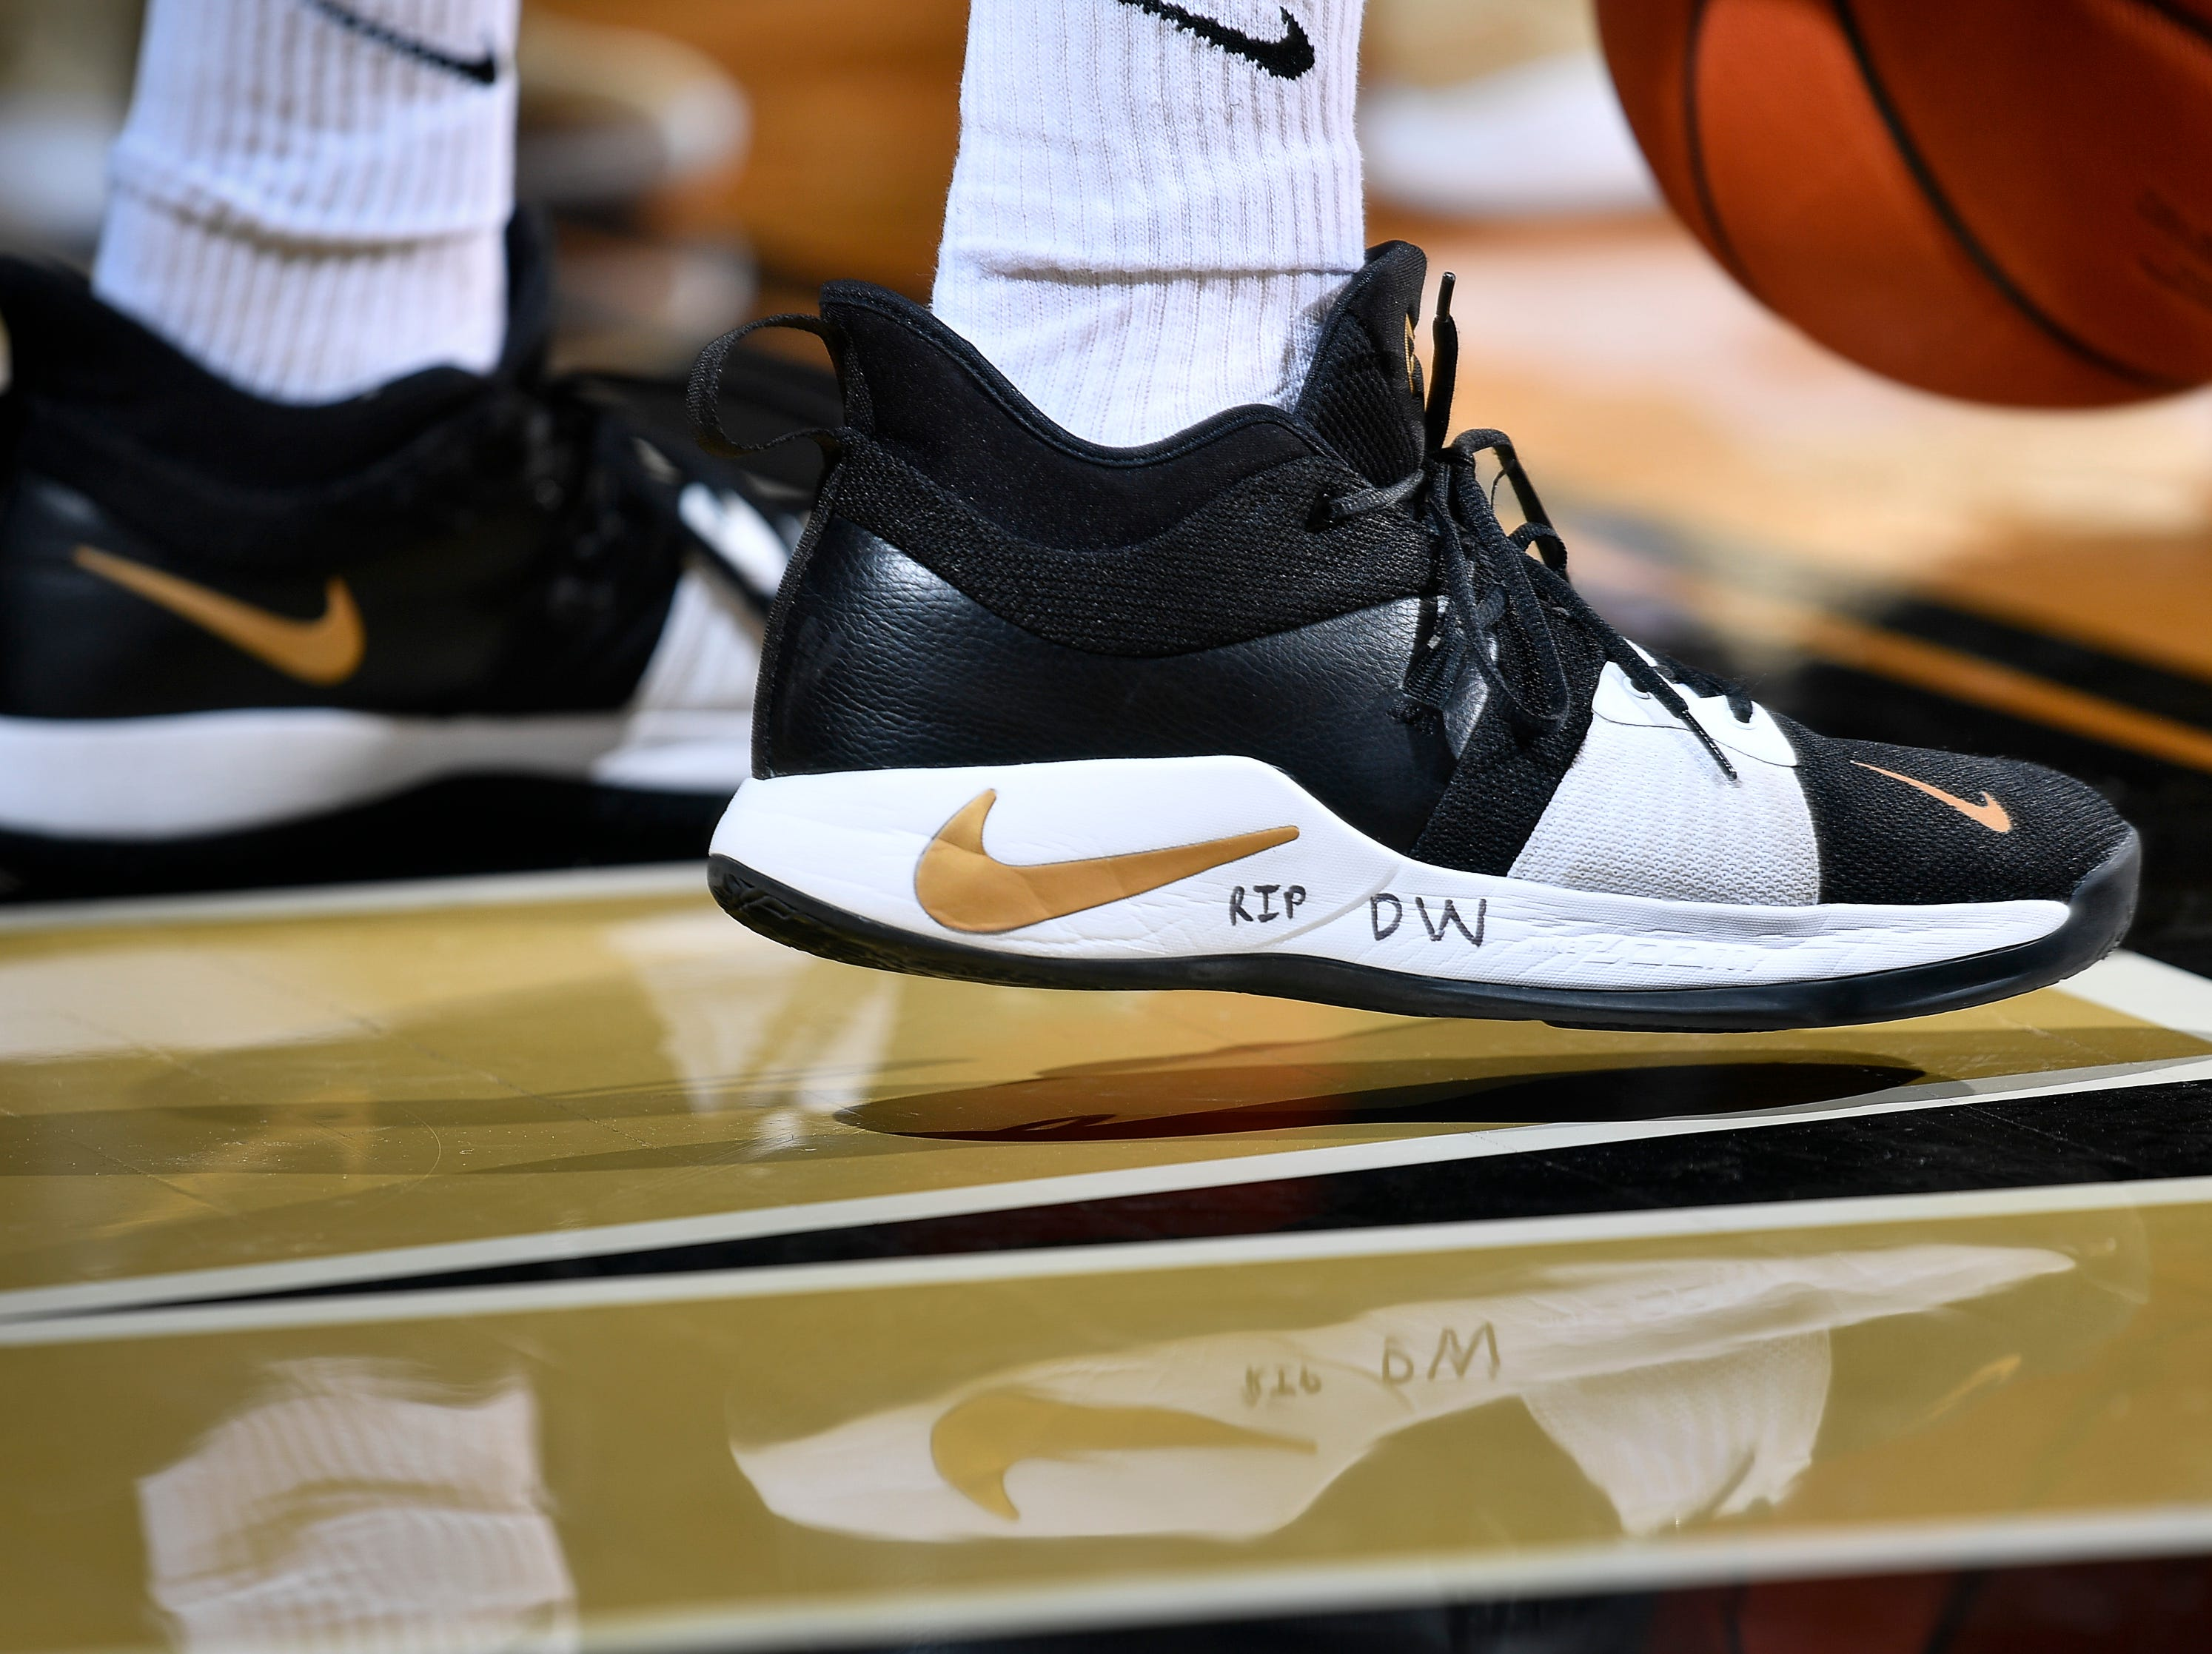 Vanderbilt guard Joe Toye marked his basketball shoes to honor former athletic director David Williams who passed away Friday as he warms up before their game against Alabama at Memorial Gym Saturday Feb. 9, 2019 in Nashville, Tenn.